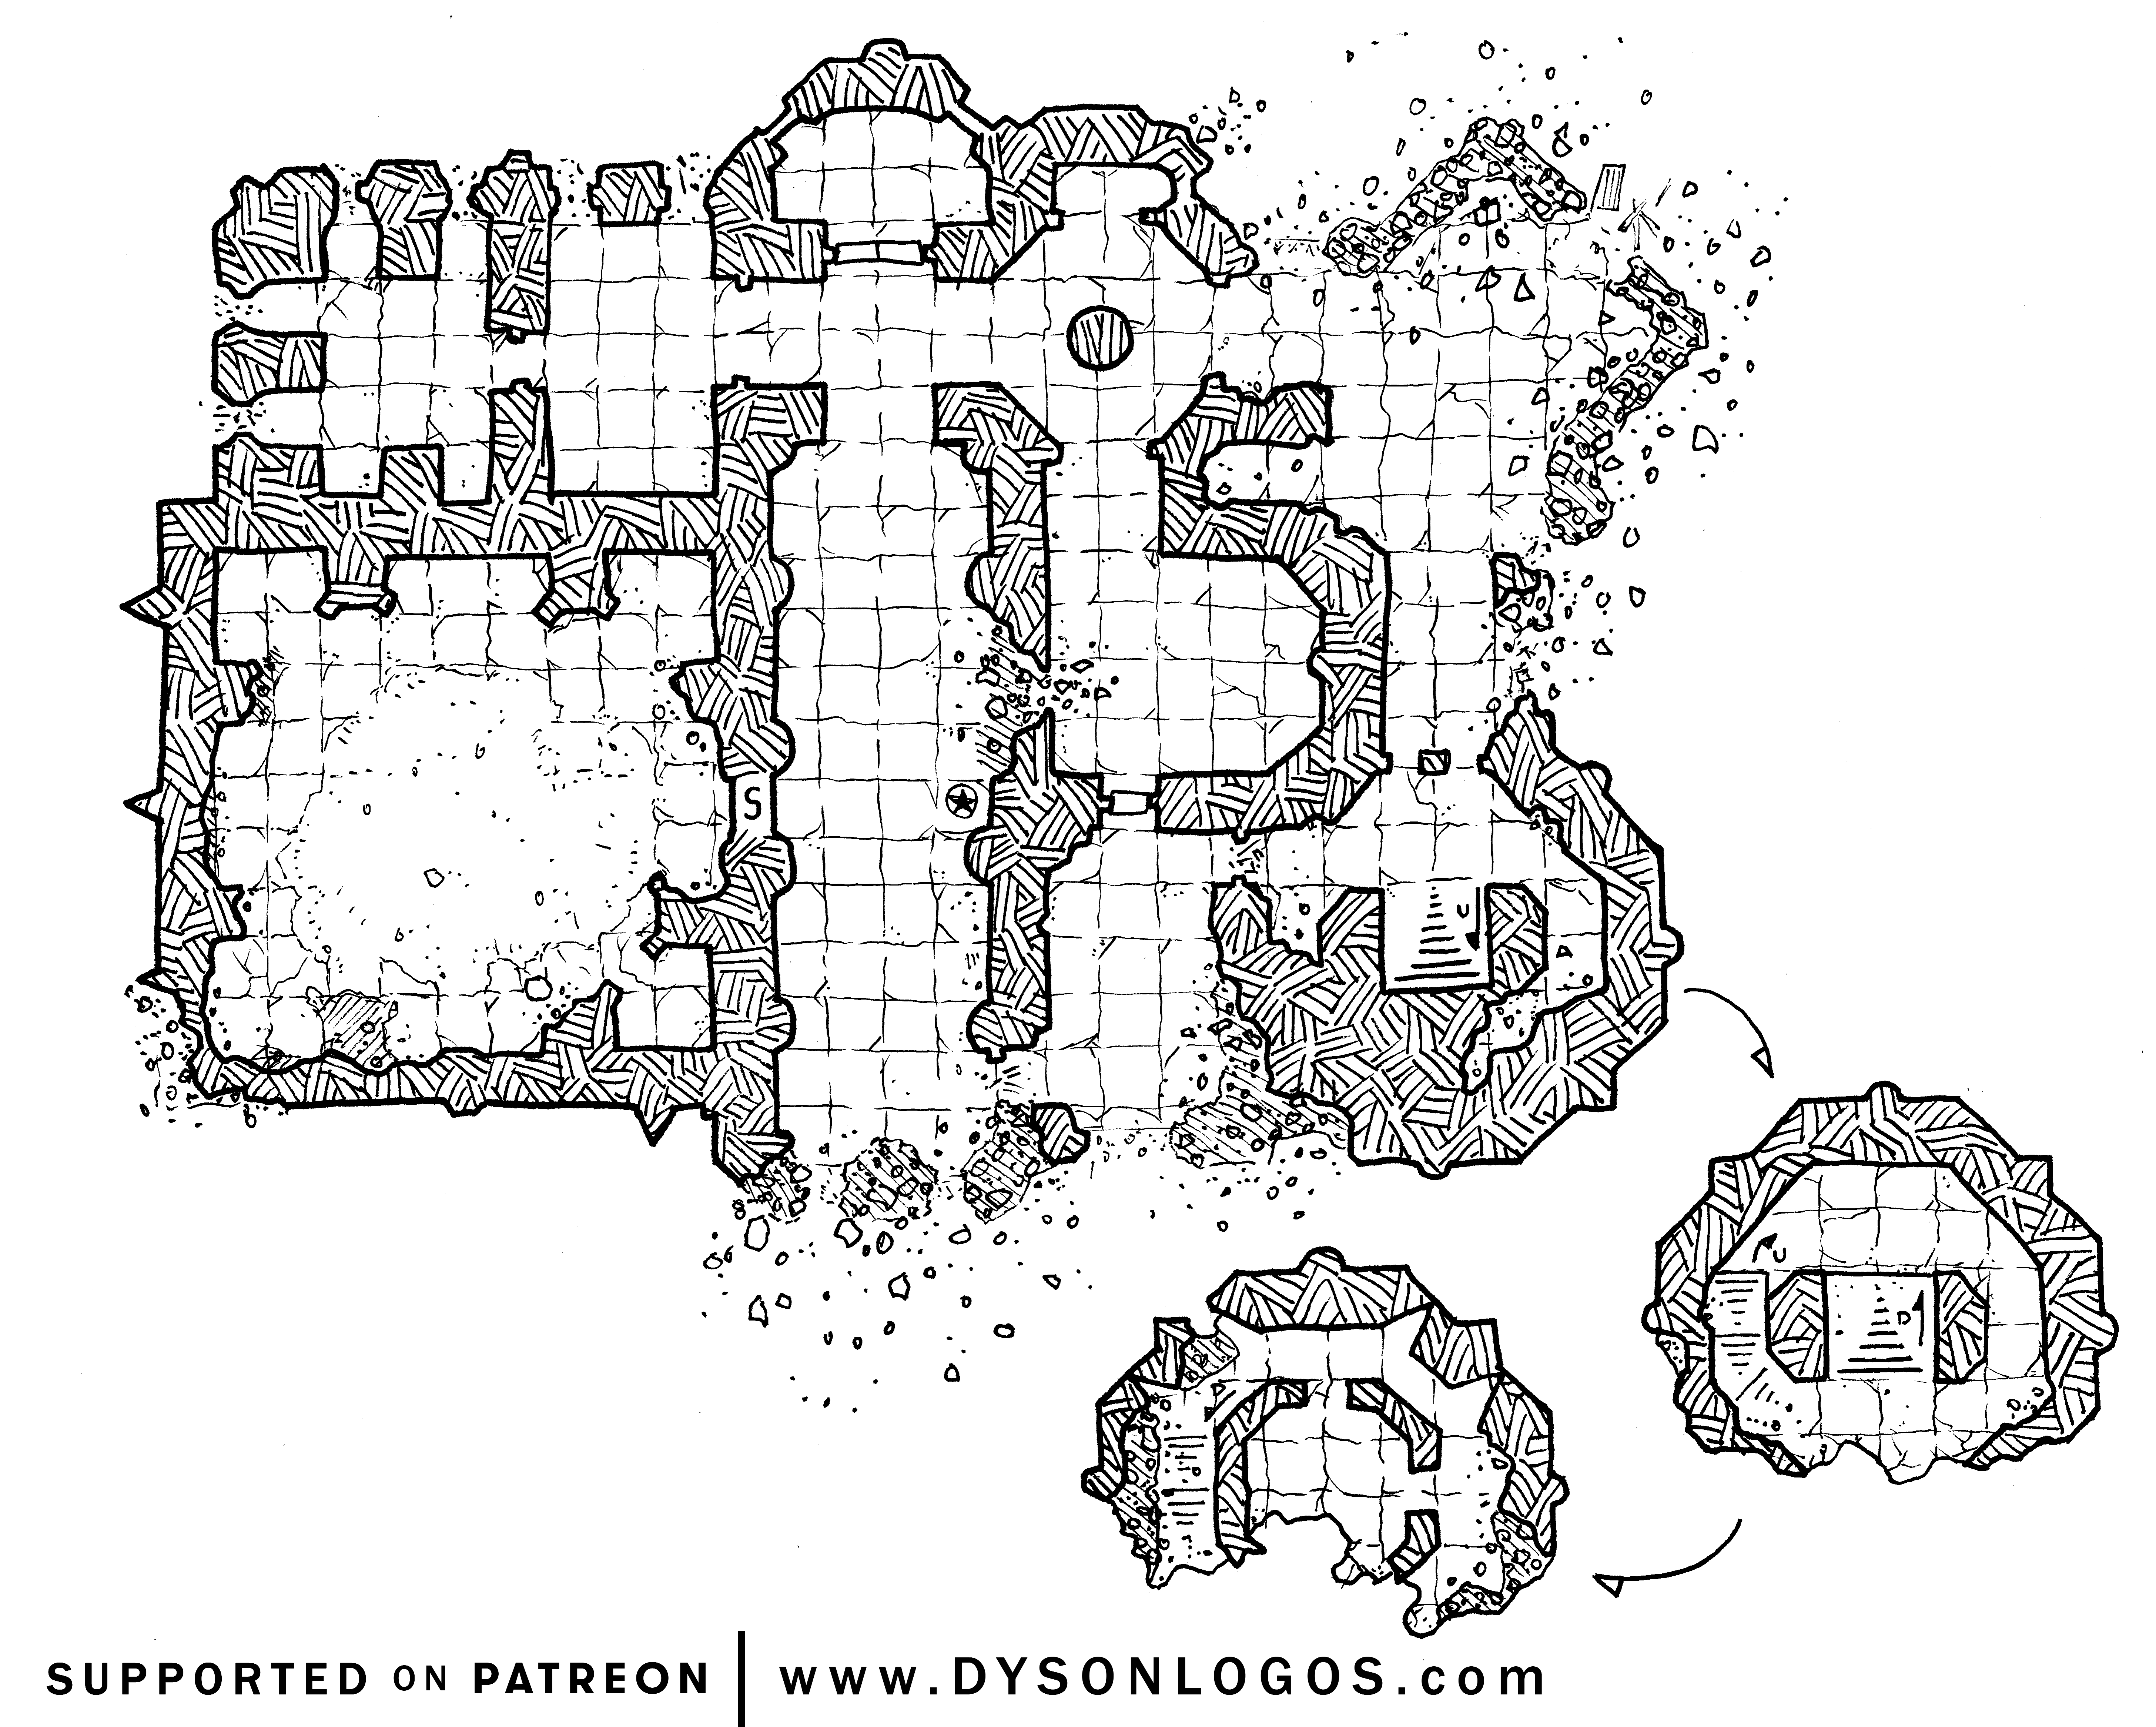 I draw the occasional D&D map Draw On Maps on